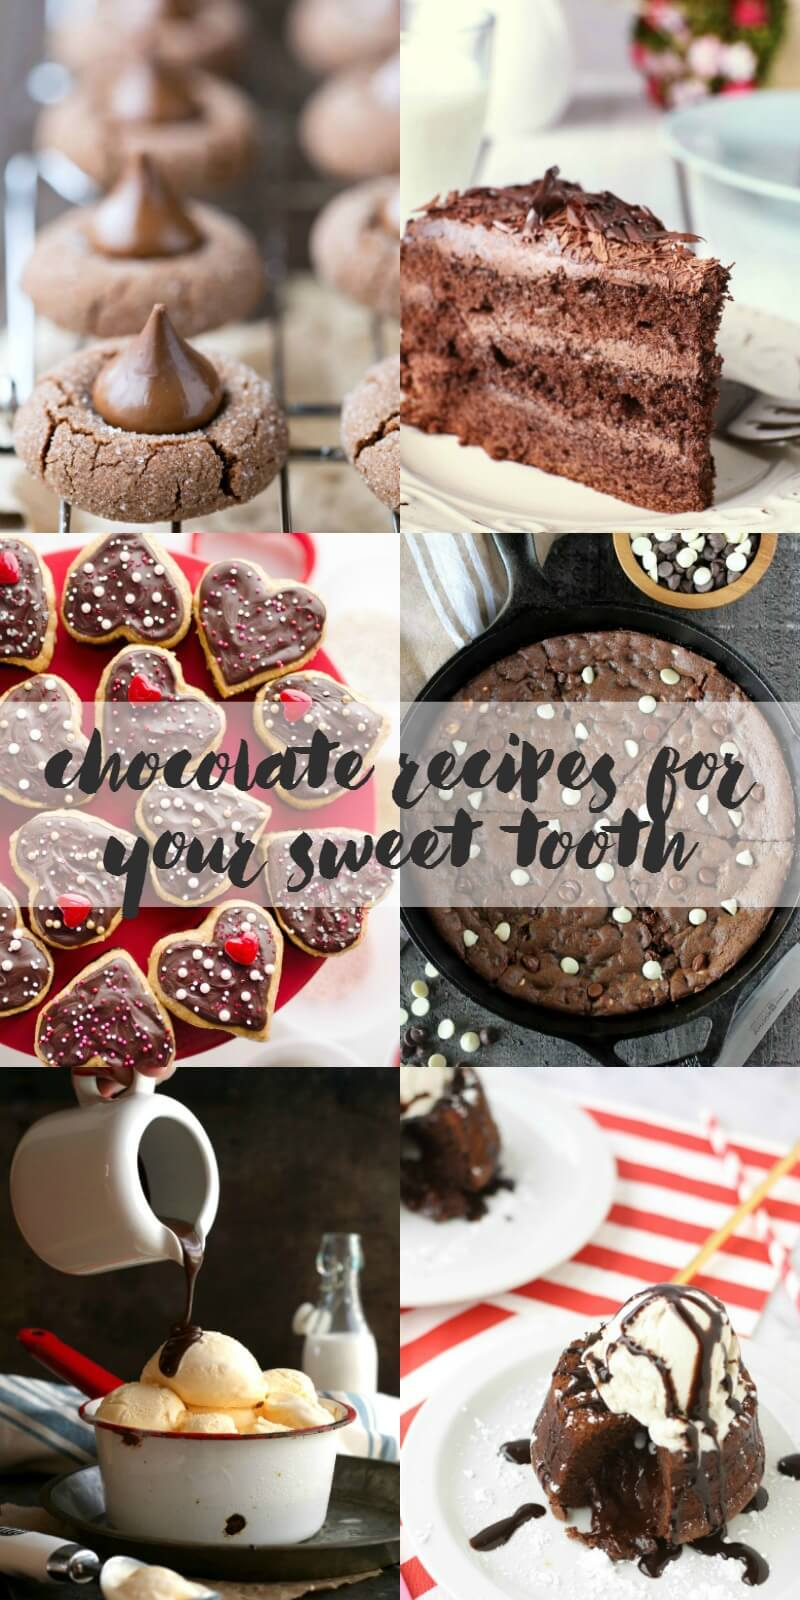 Ultimate Chocolate Recipes